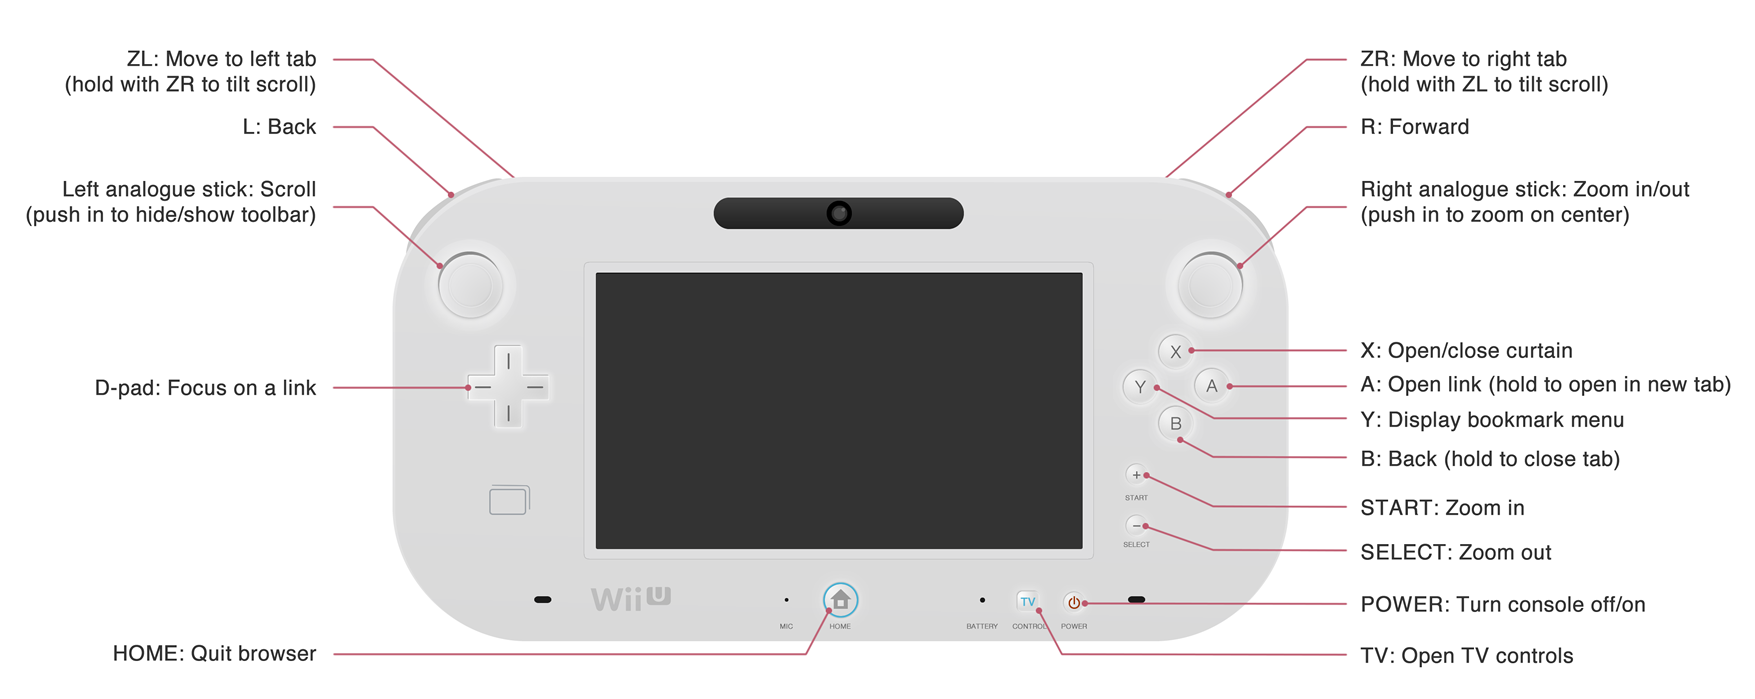 how to connect a controller to wii u